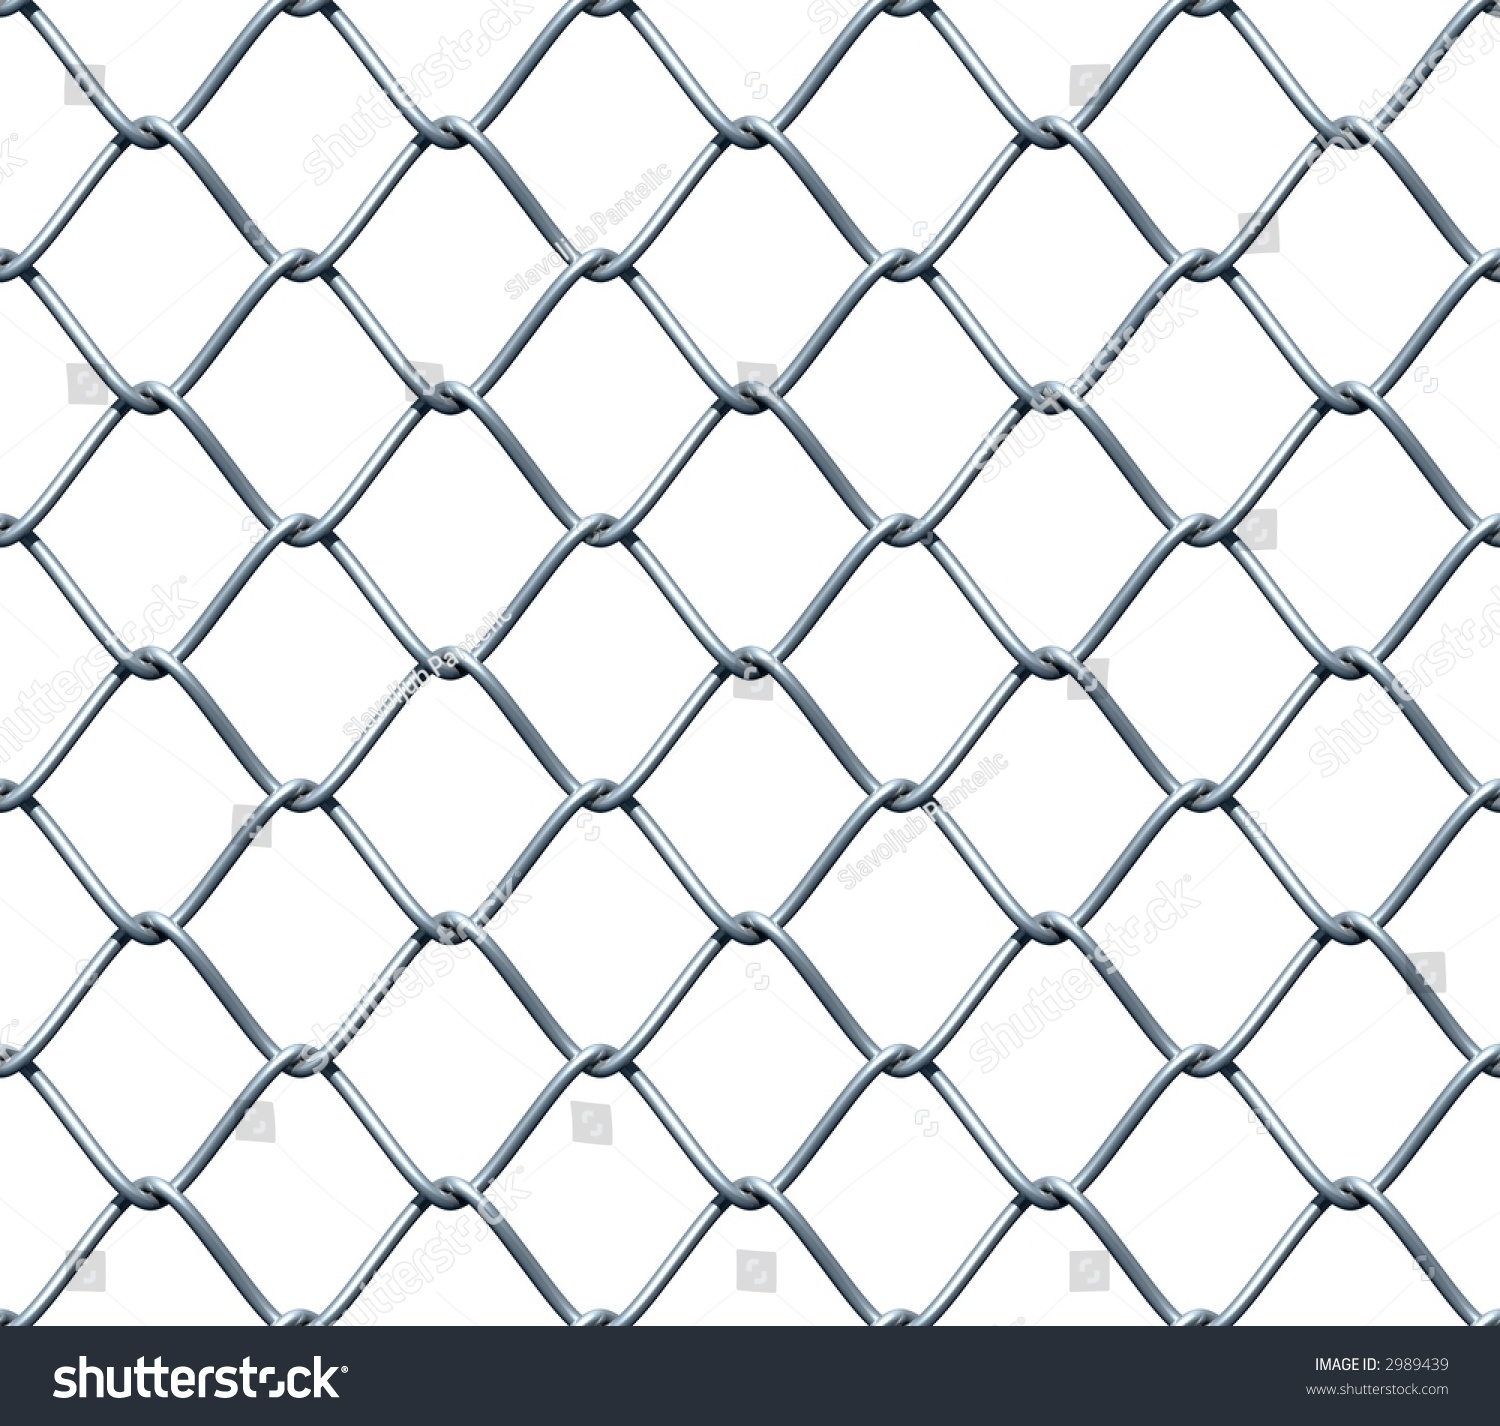 Seamless chainlink fence d rendered texture of